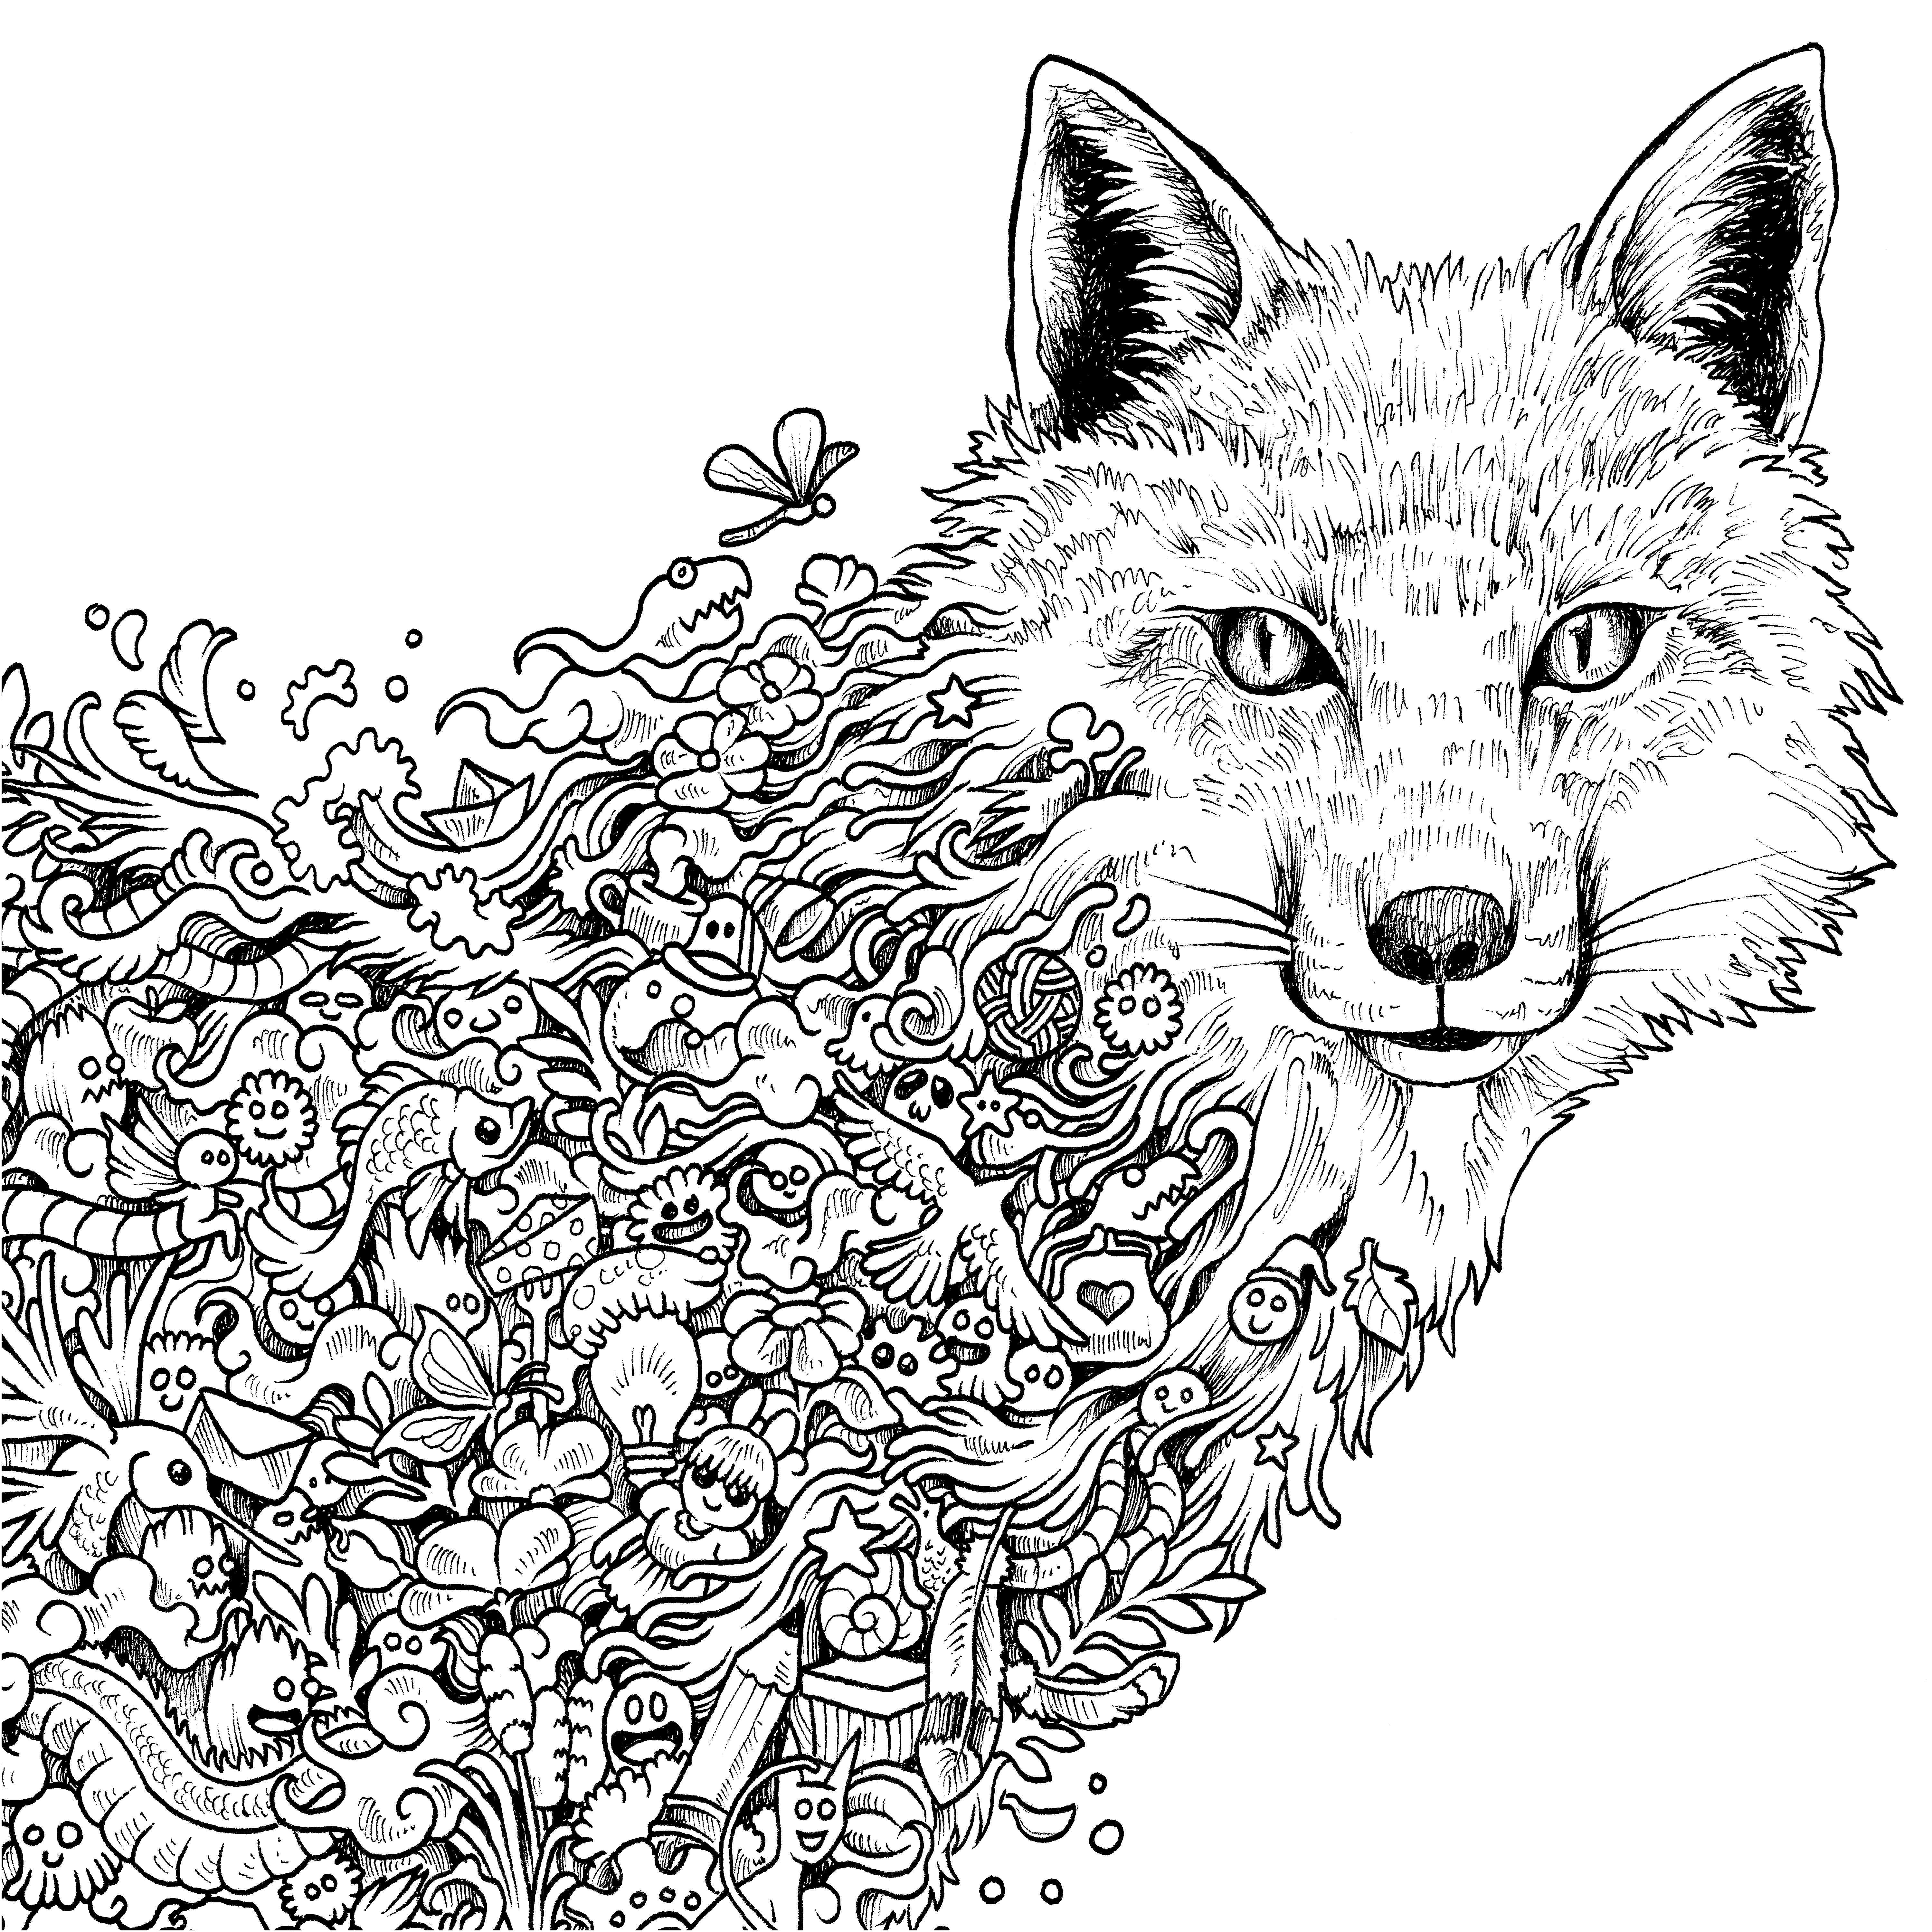 printable wolf coloring pages wolf coloring pages download and print wolf coloring pages printable pages wolf coloring